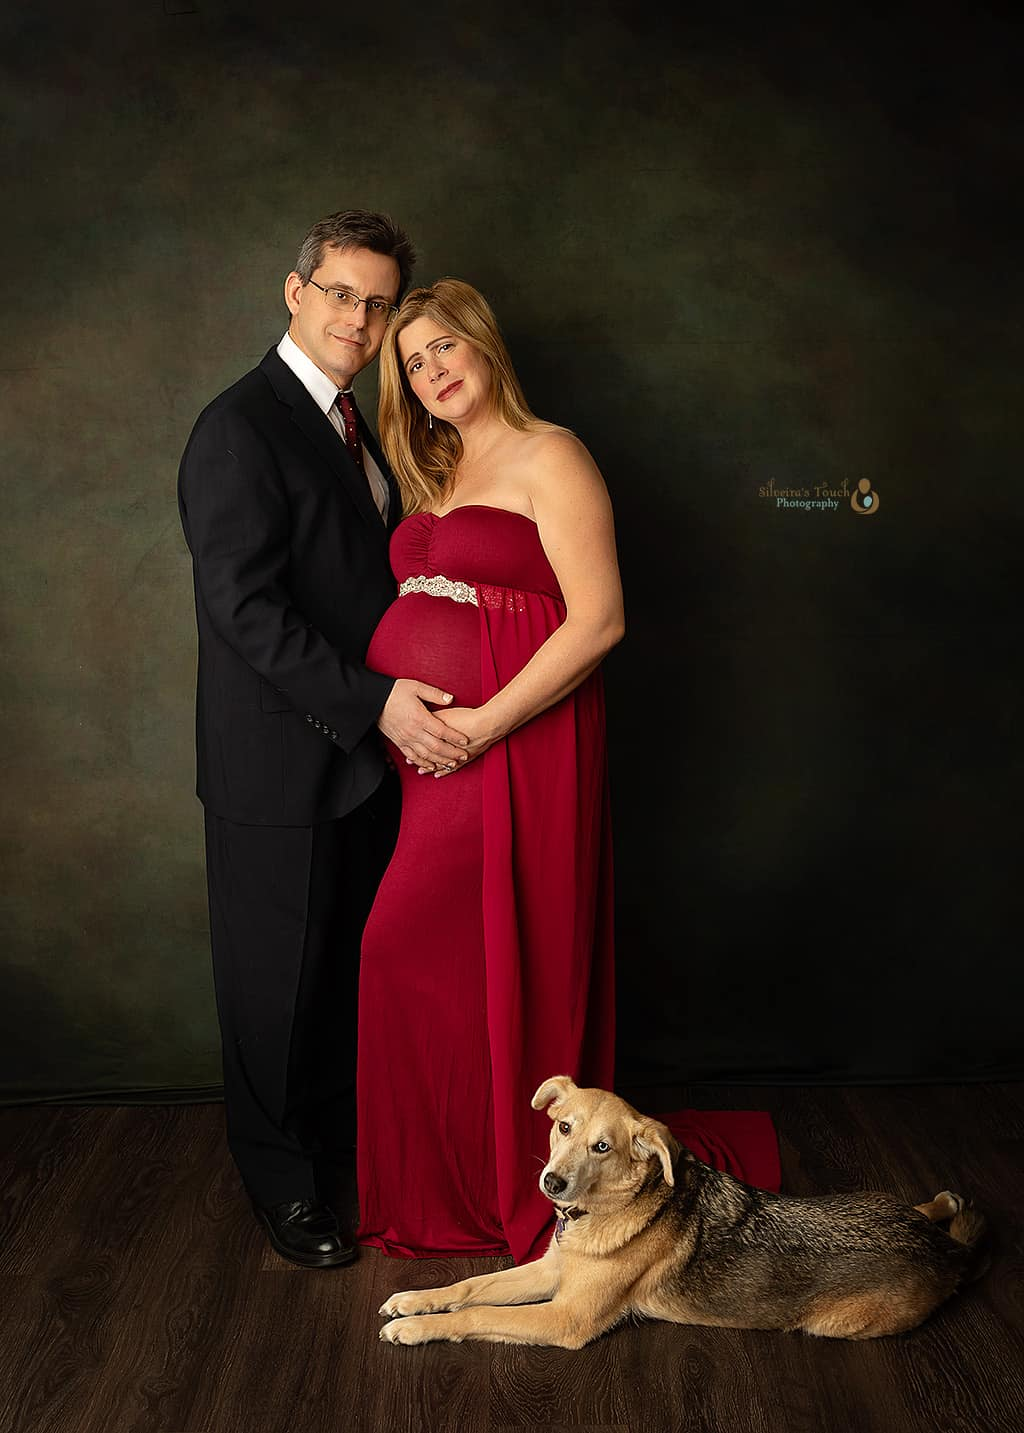 NJ maternity couple in studio with dog